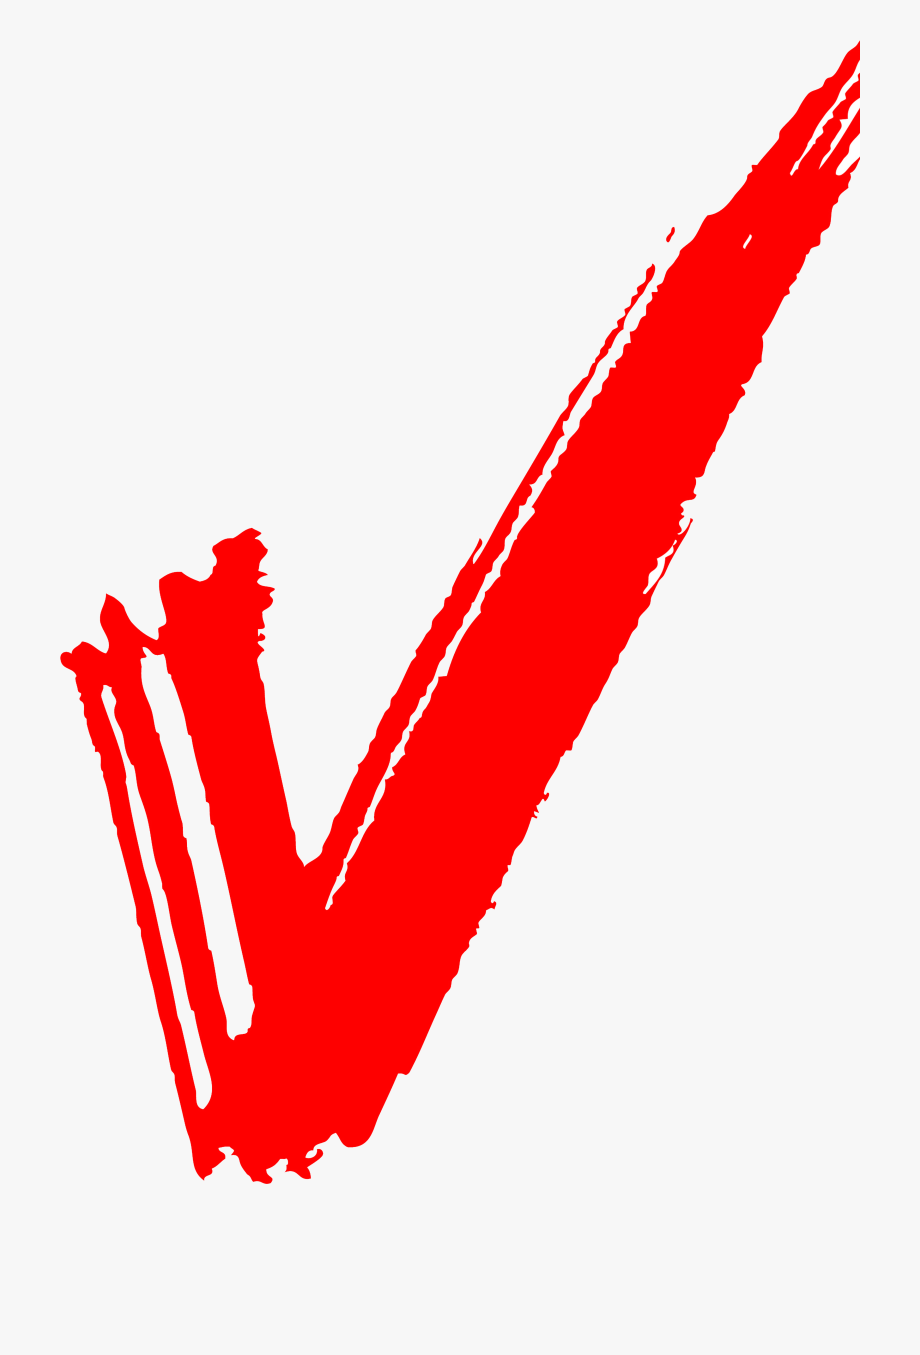 Checkmark Clipart Red.